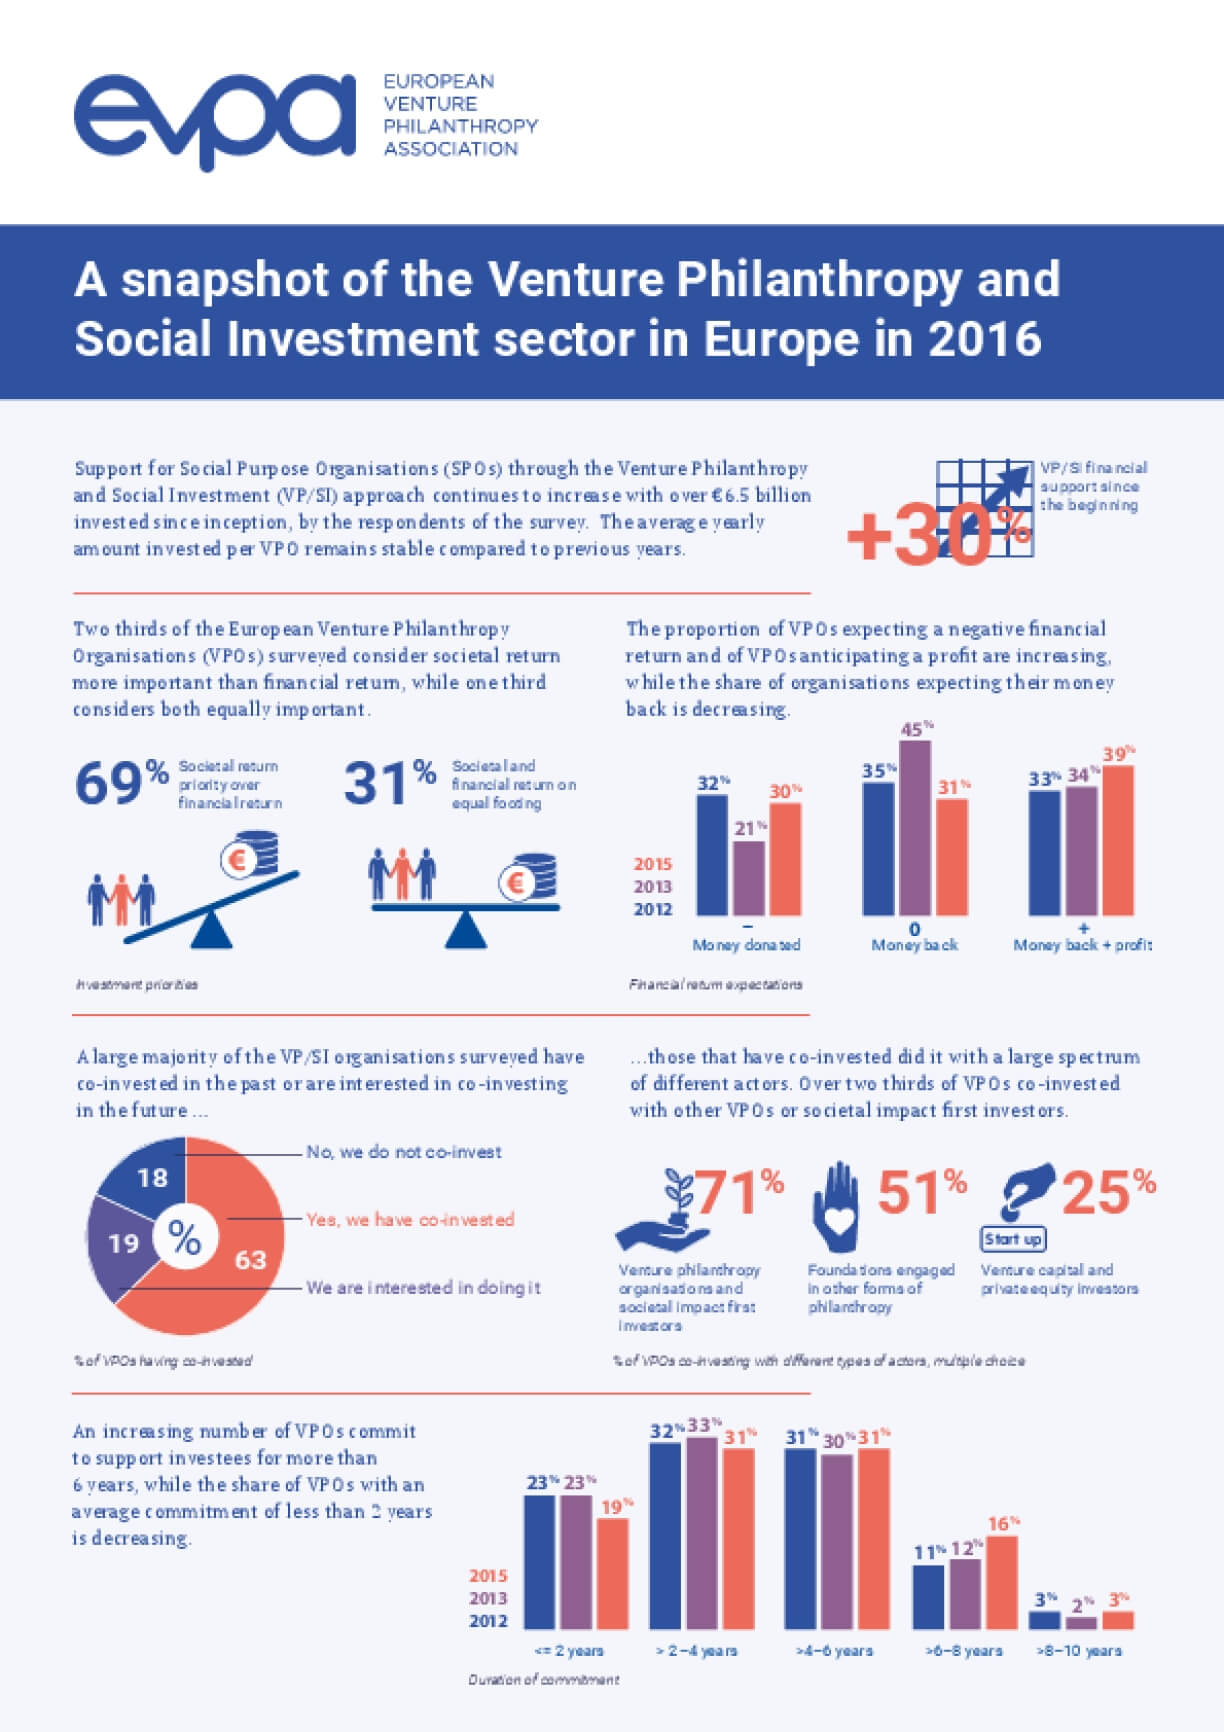 A Snapshot of the Venture Philanthropy and Social Investment Sector in Europe in 2016